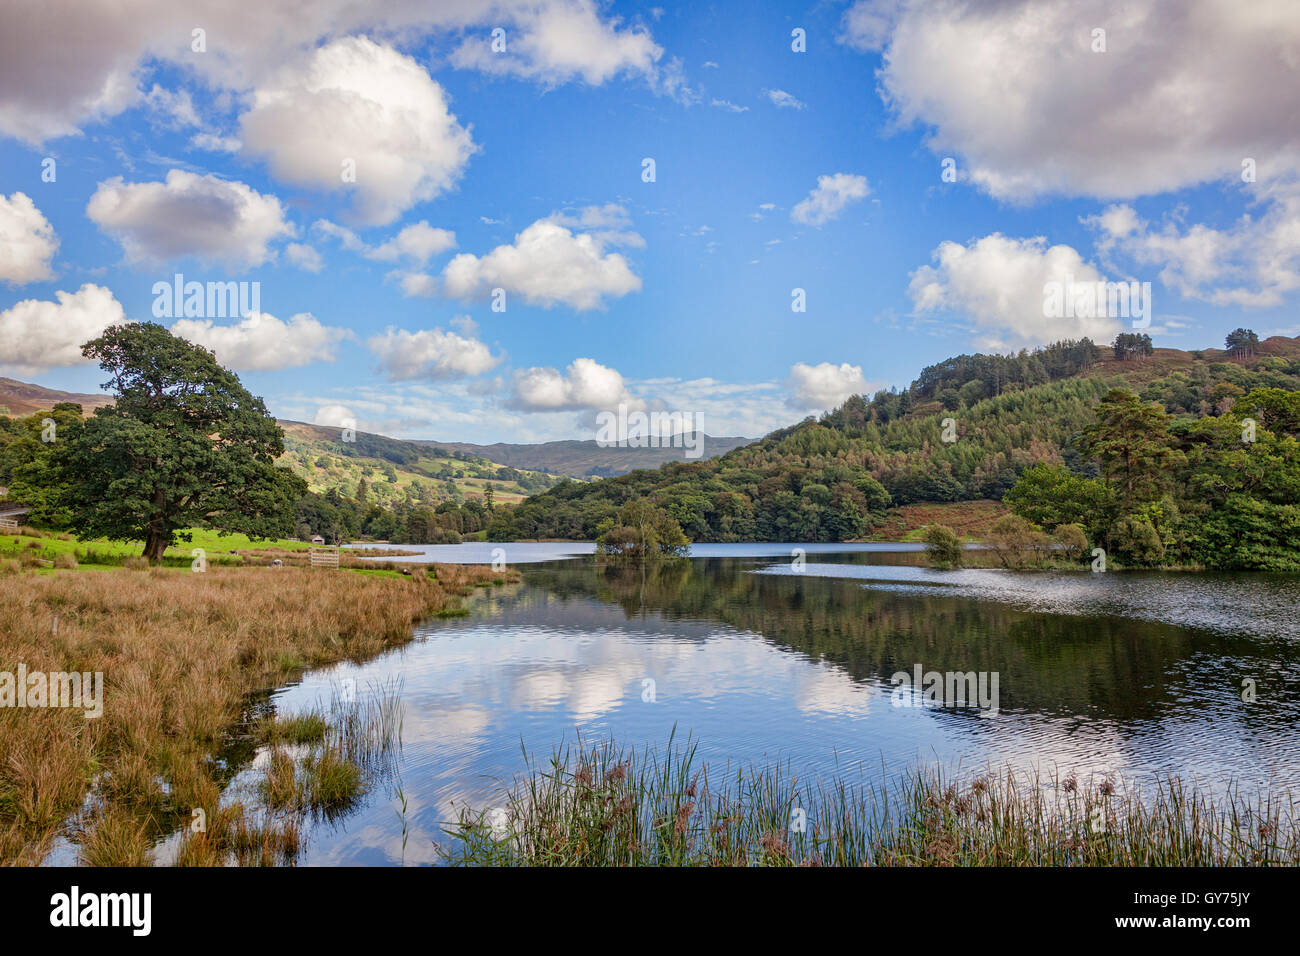 Rydal Wasser, Nationalpark Lake District, Cumbria, England, UK Stockbild